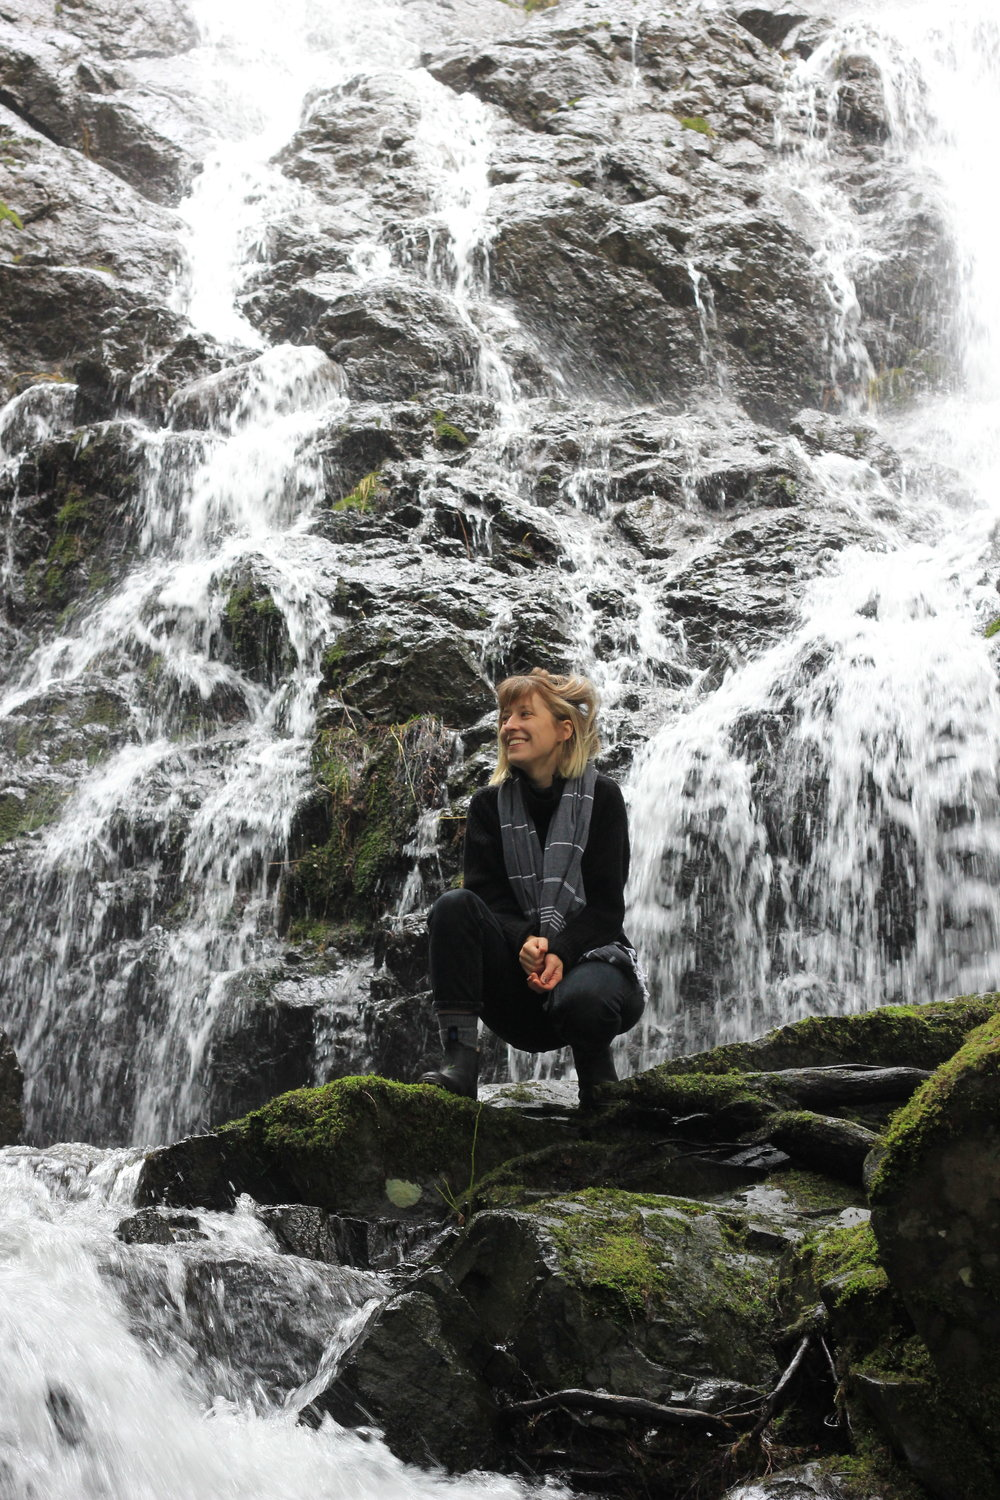 Bryanna has been the brightest light during my darkest times. (I also love waterfalls).